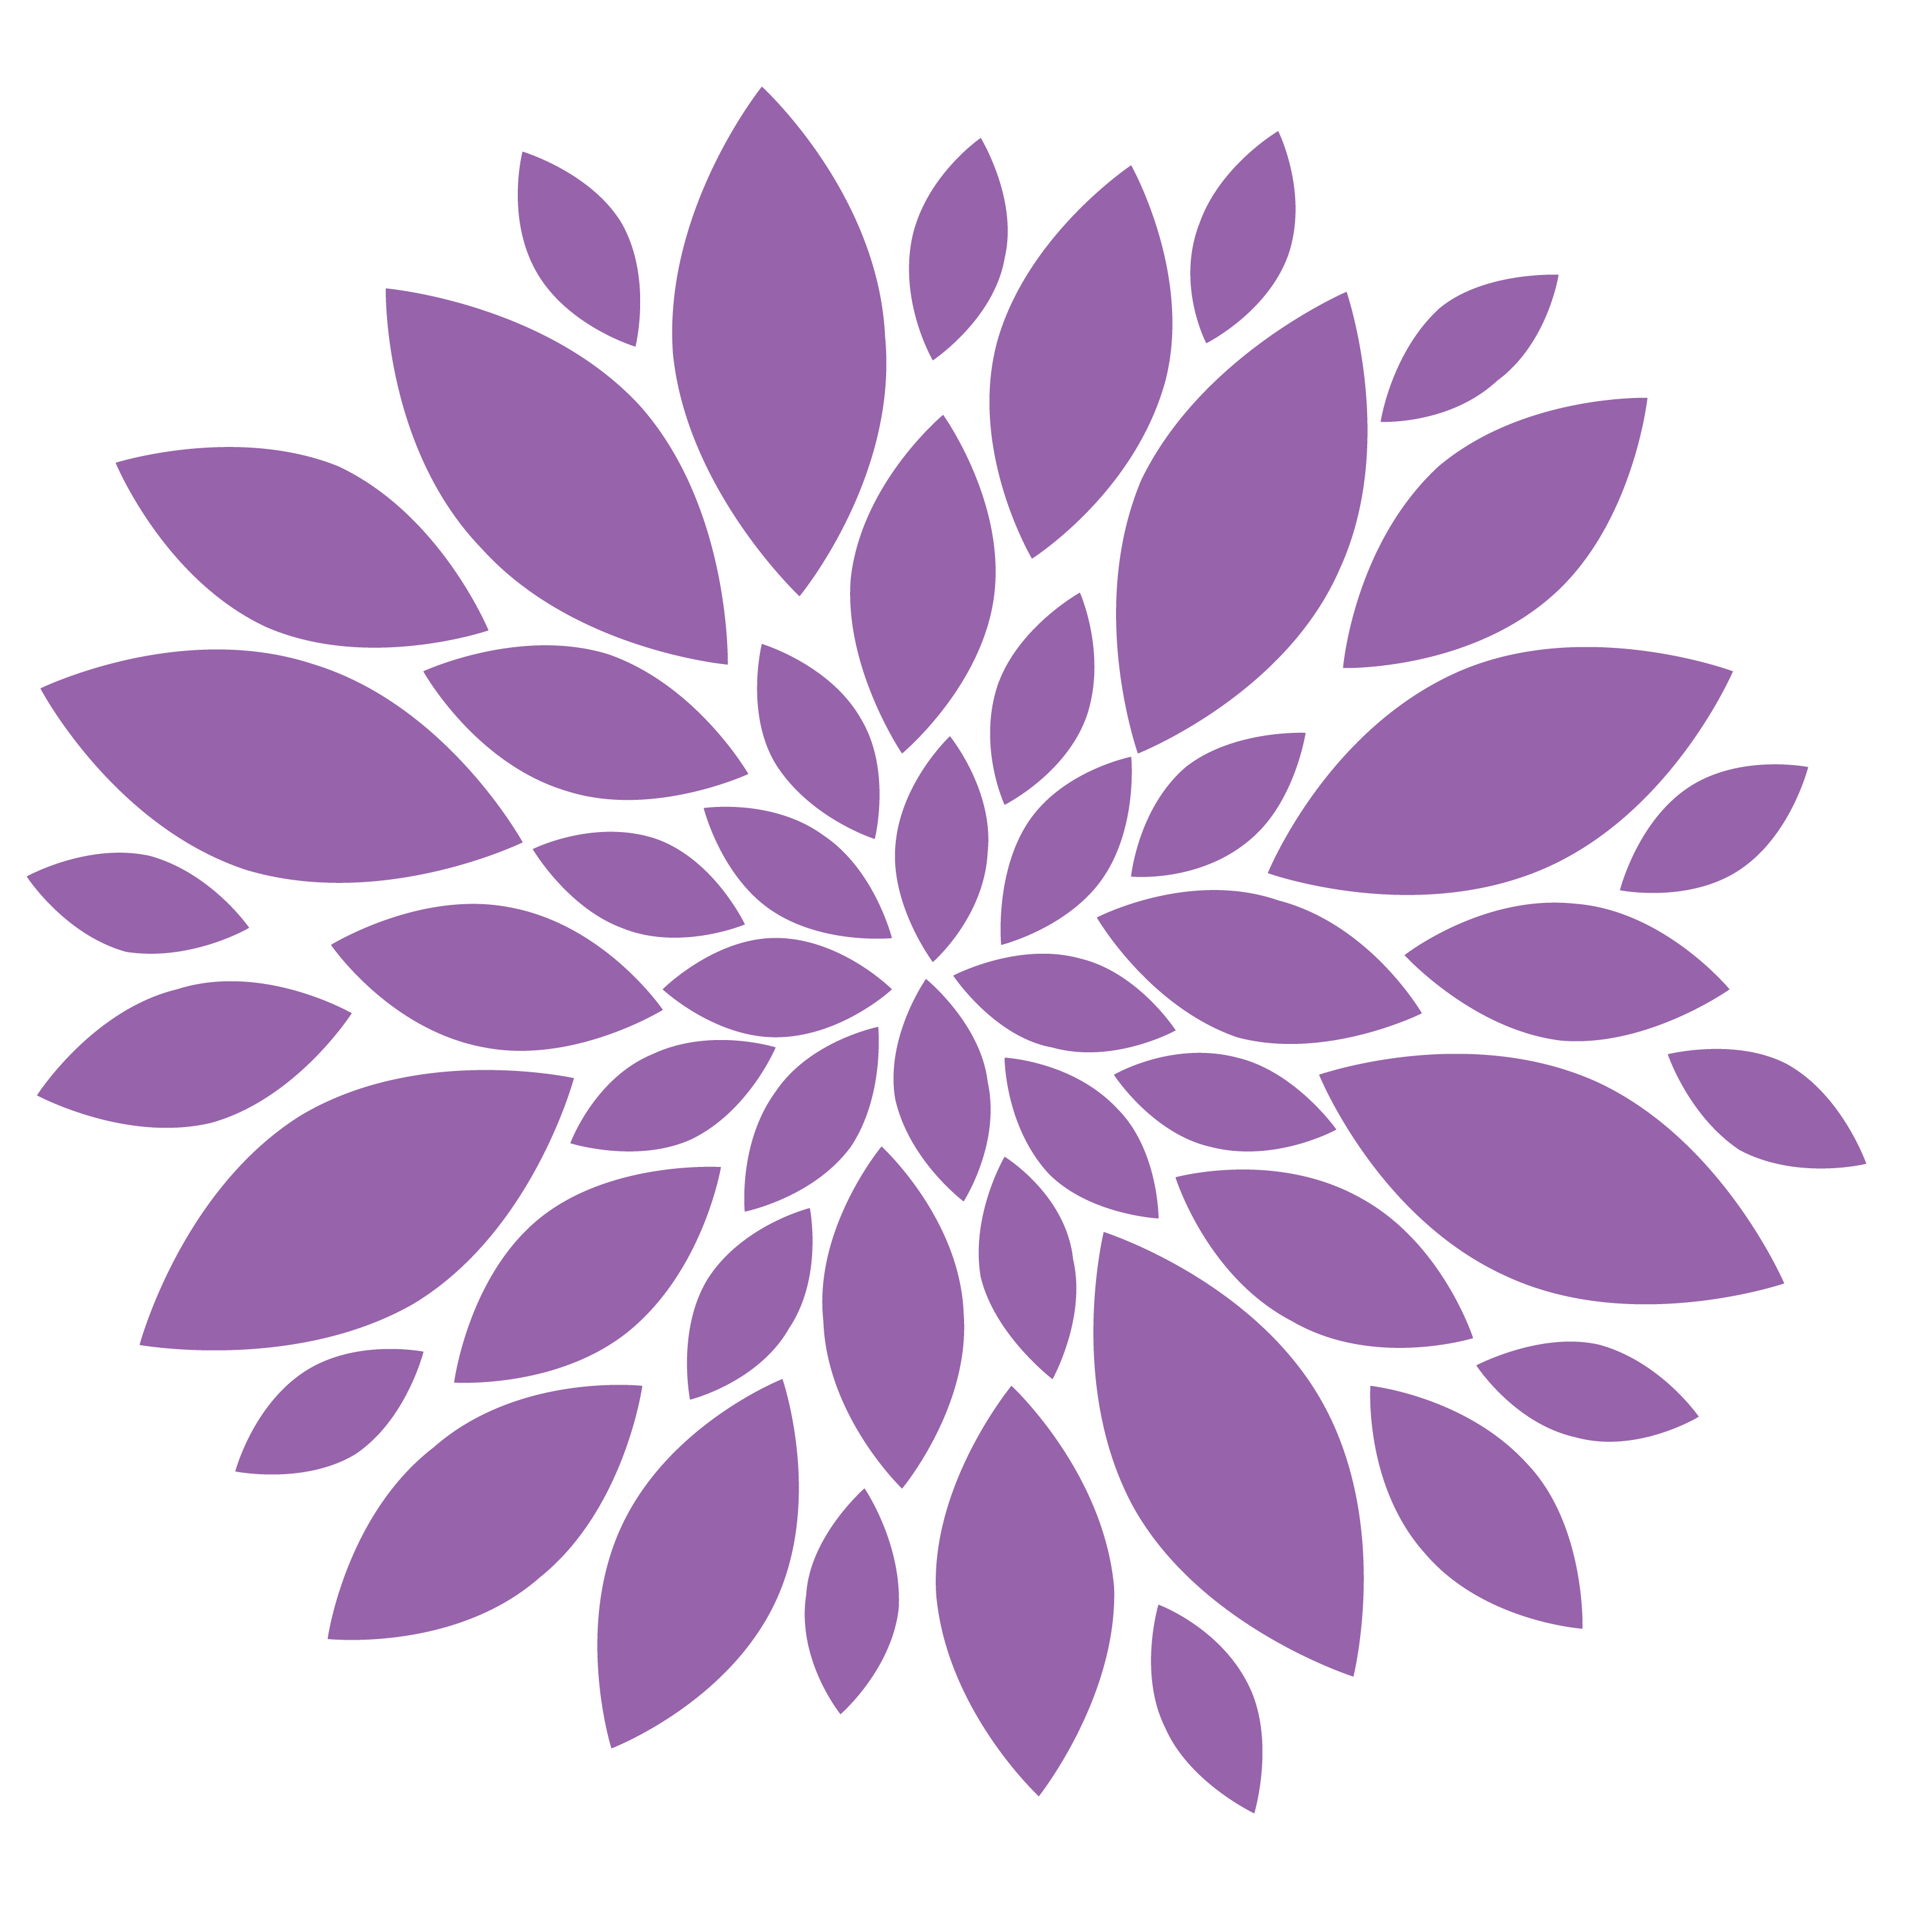 Purple Flower Png image #6238